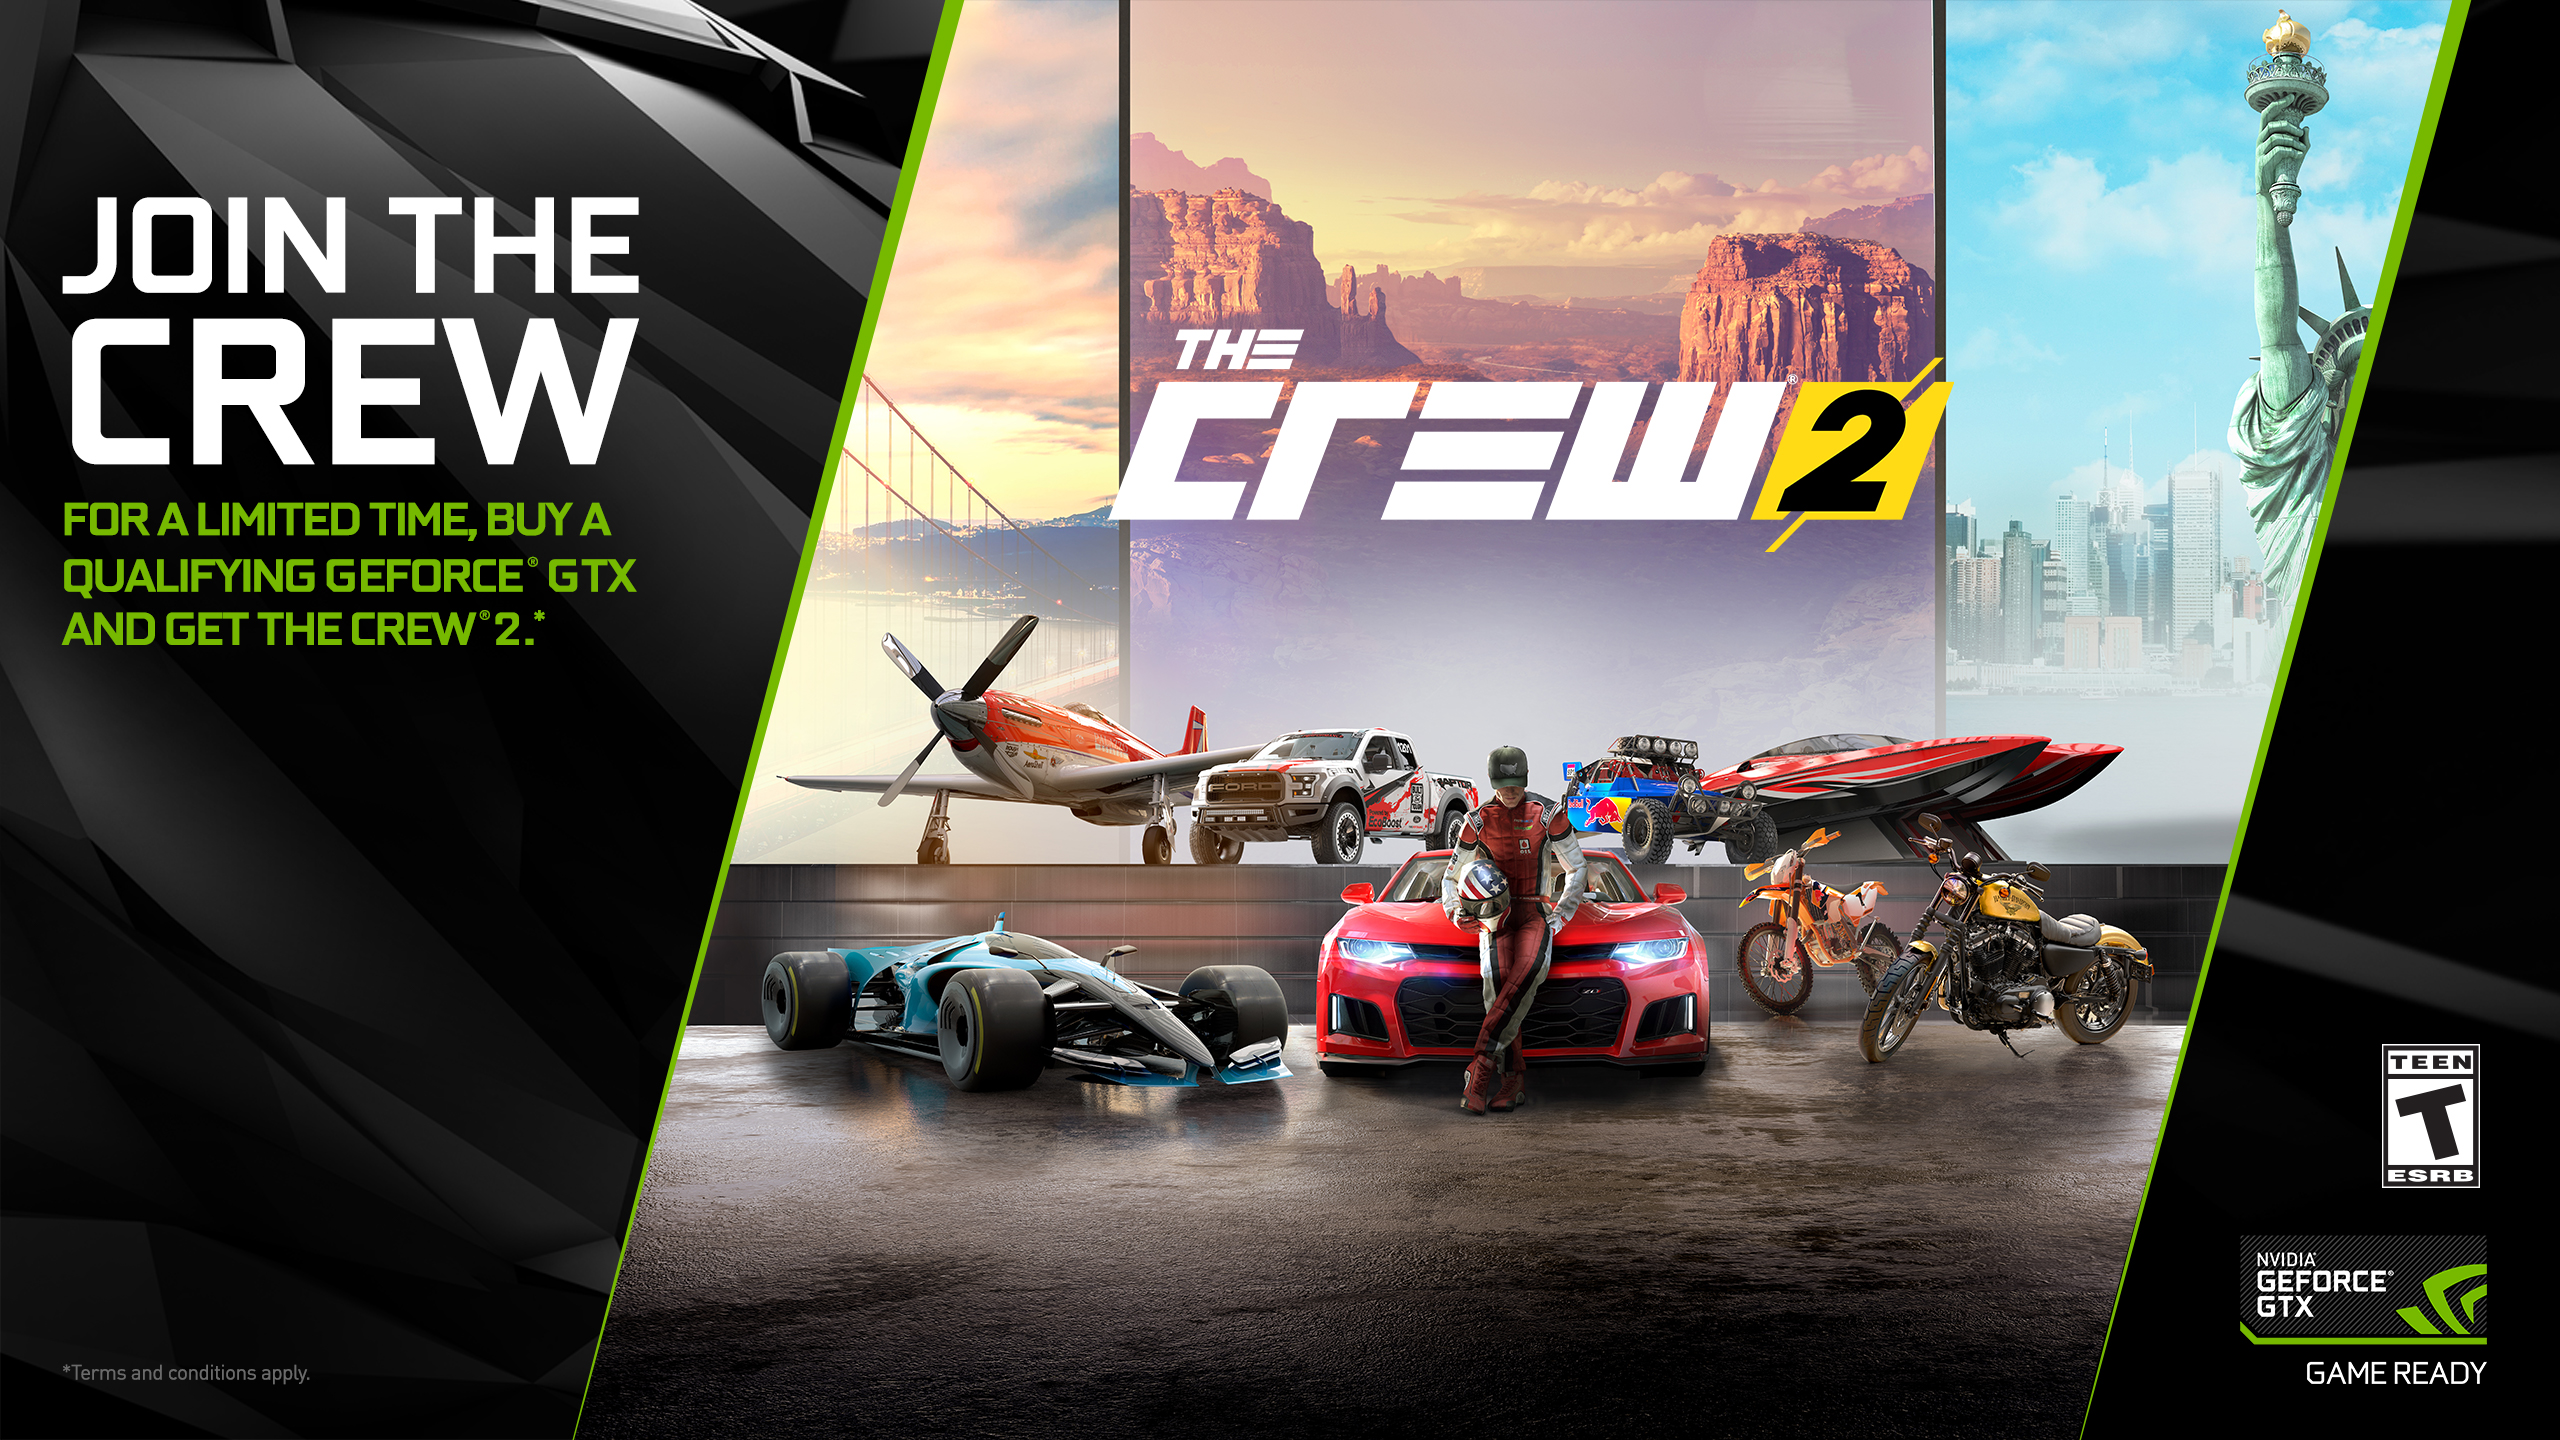 Join the Crew. For a limited time, buy a qualifying Geforce GTX and get The Crew 2. Terms and conditions apply.